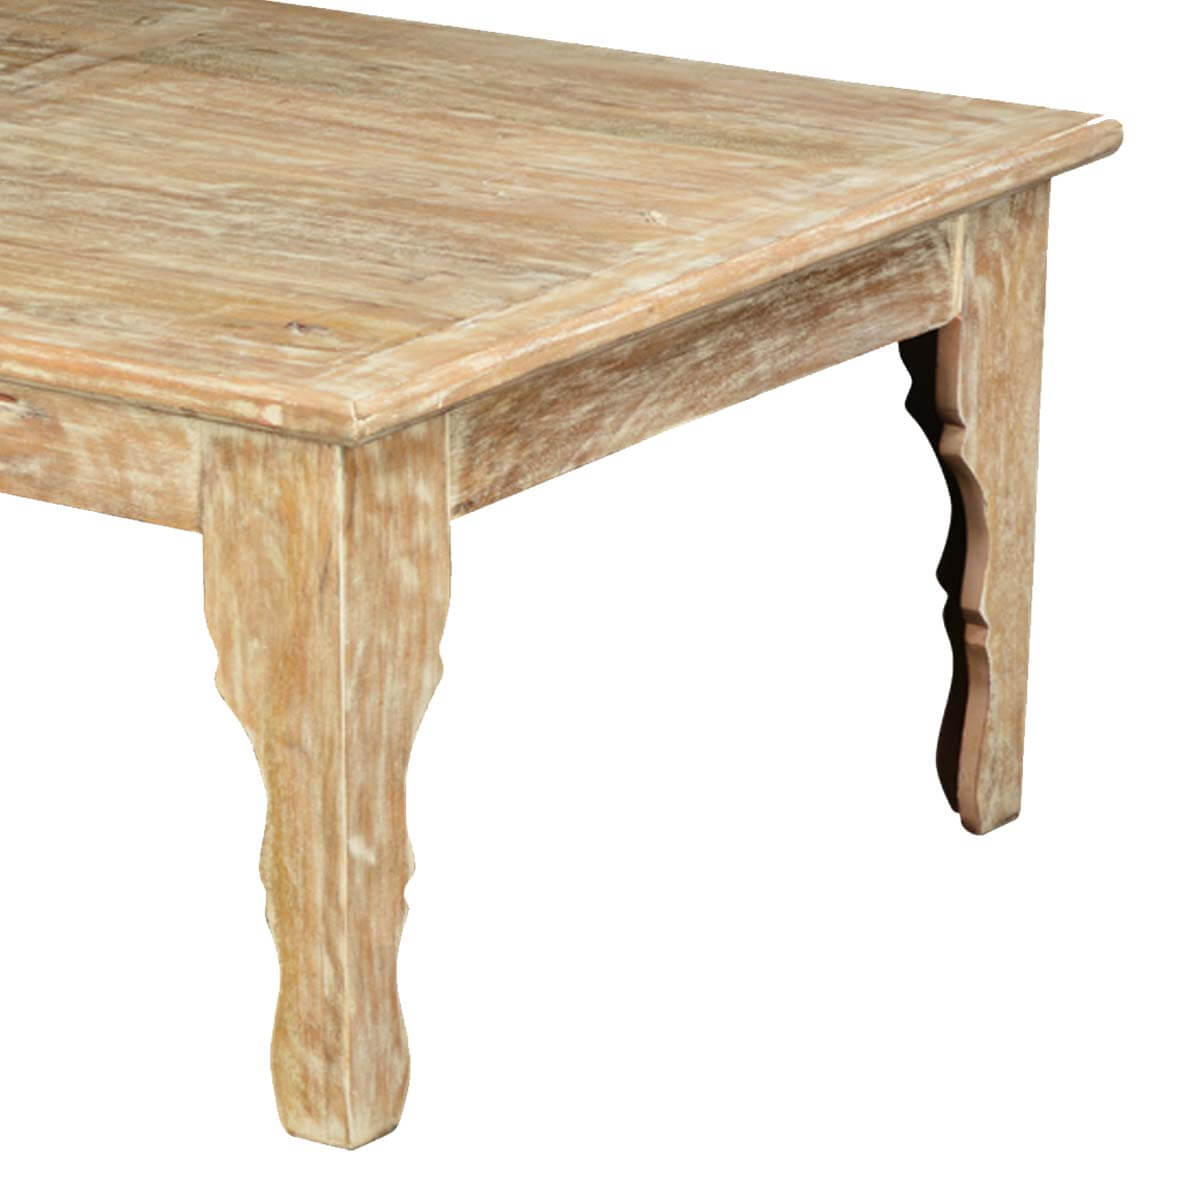 Rustic All Wood Coffee Table: Winter White Mango Wood Rustic Coffee Table